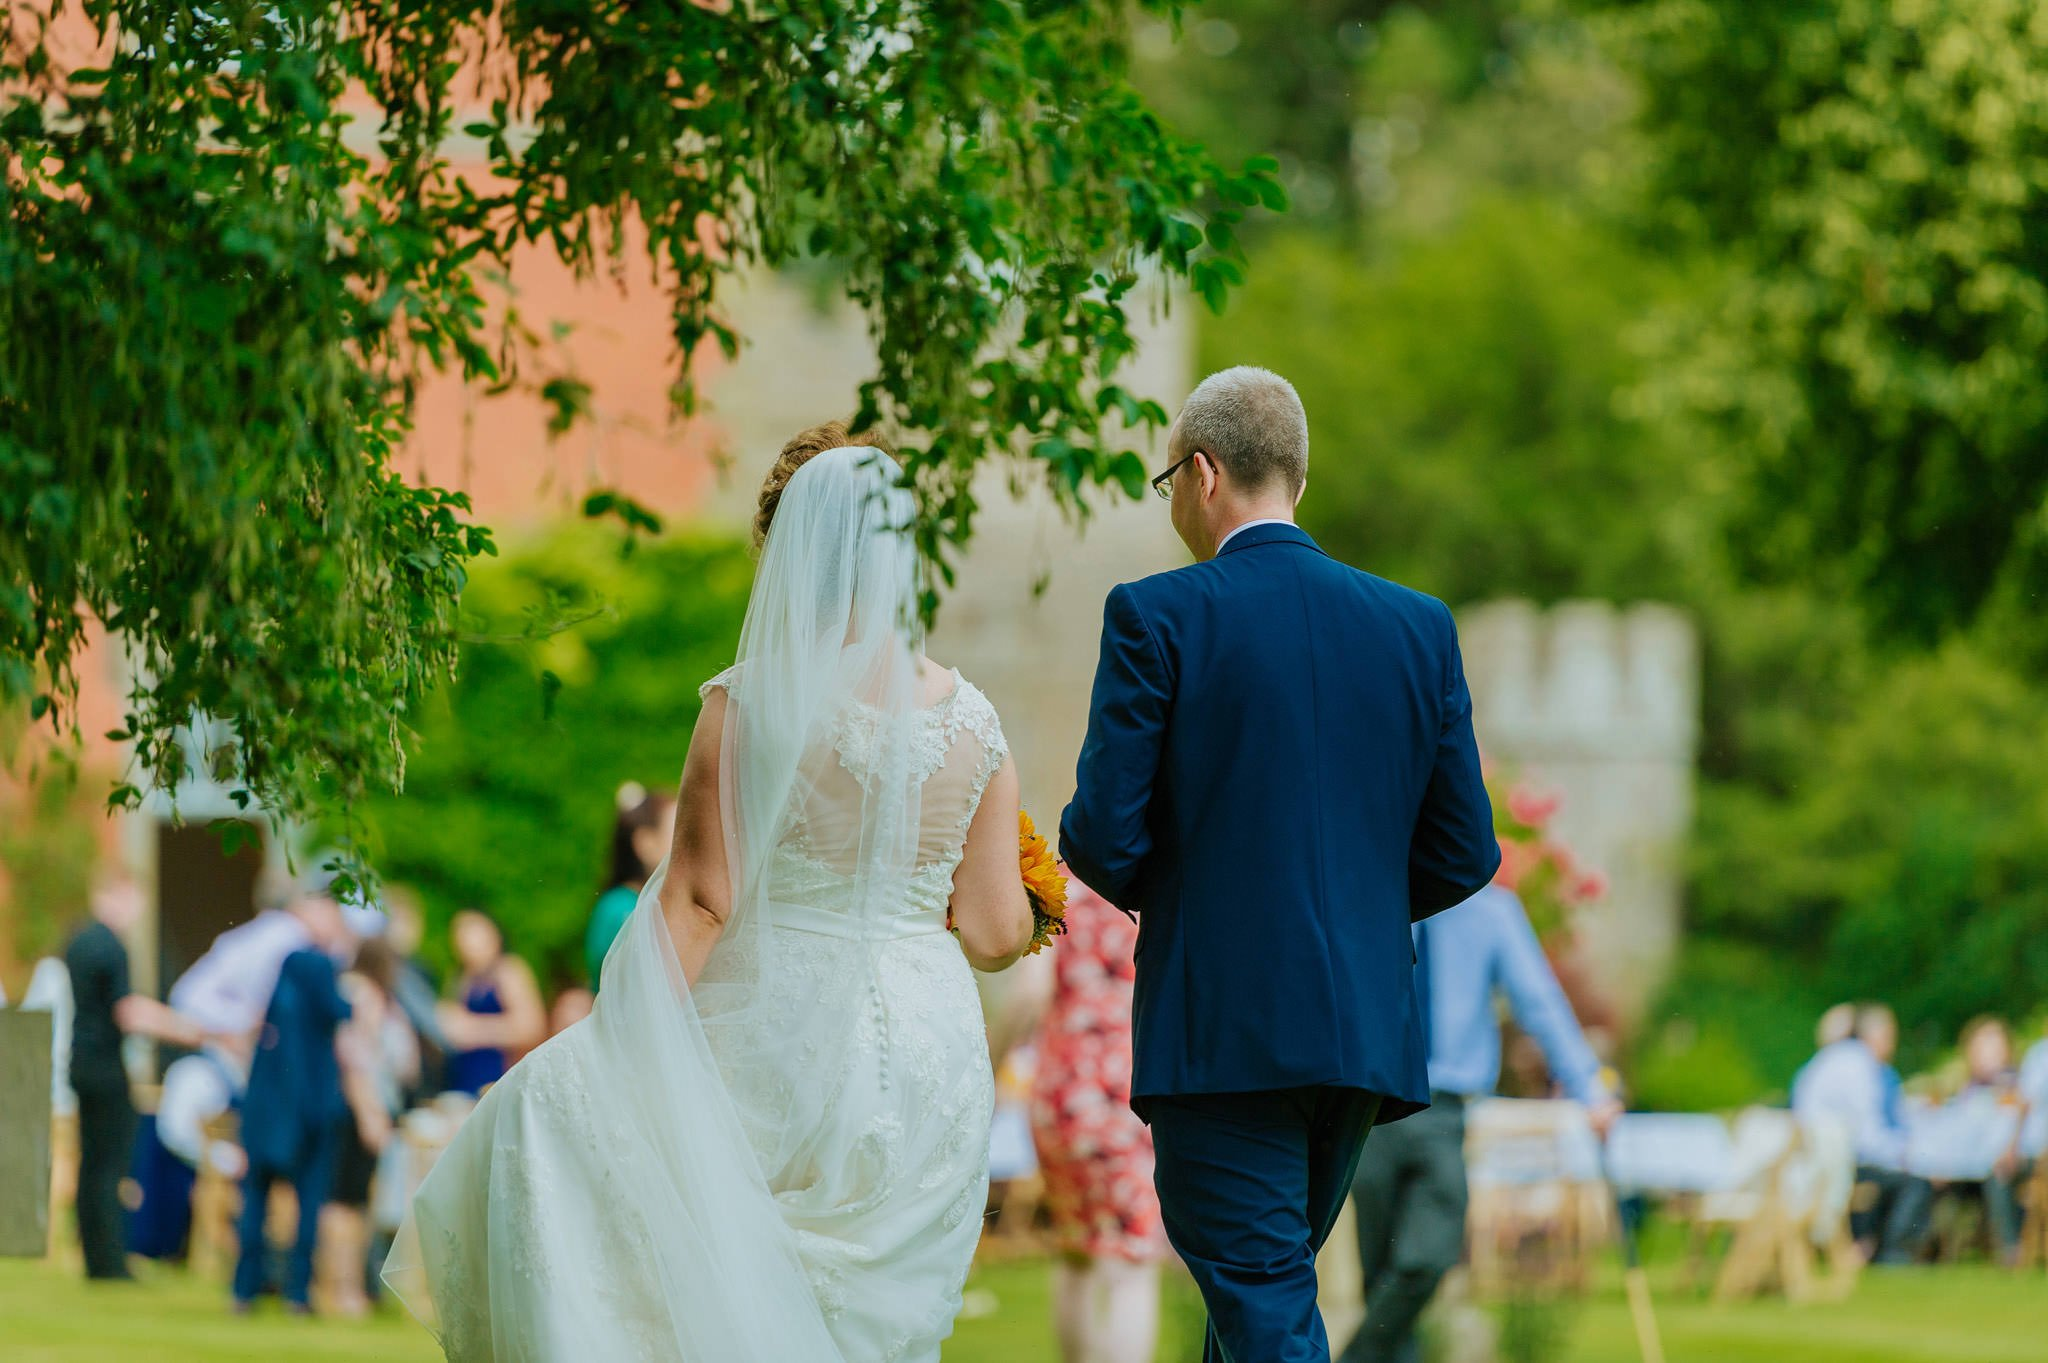 Wedding photography at Homme House in Herefordshire, West Midlands 73